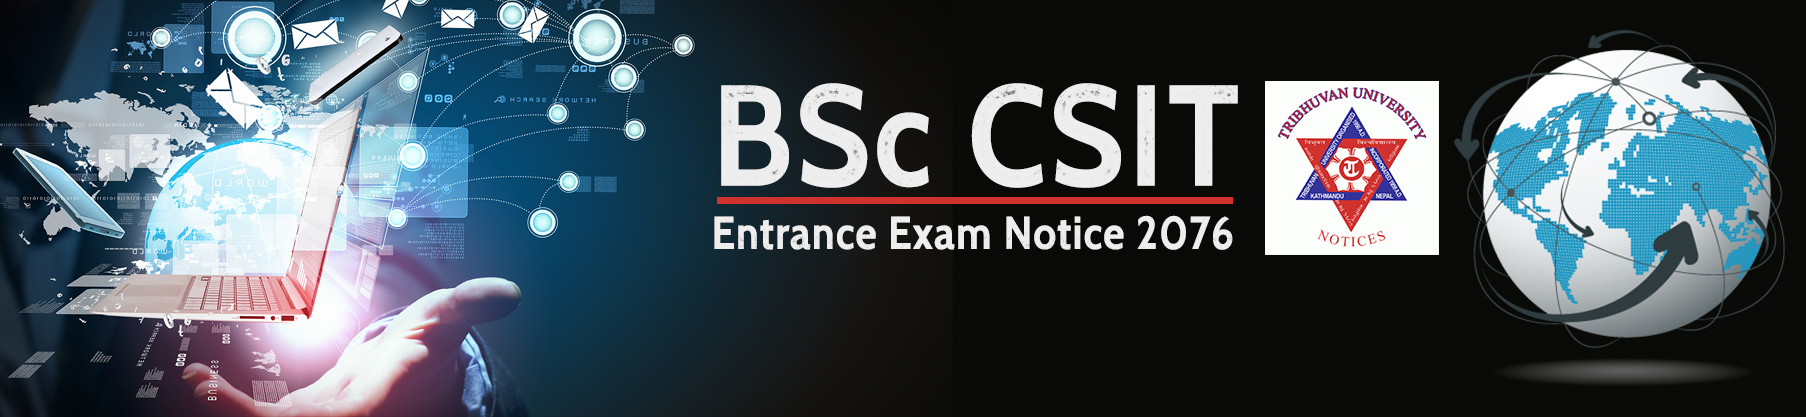 BSc CSIT Entrance Exam Notice 2076 from Tribhuvan University